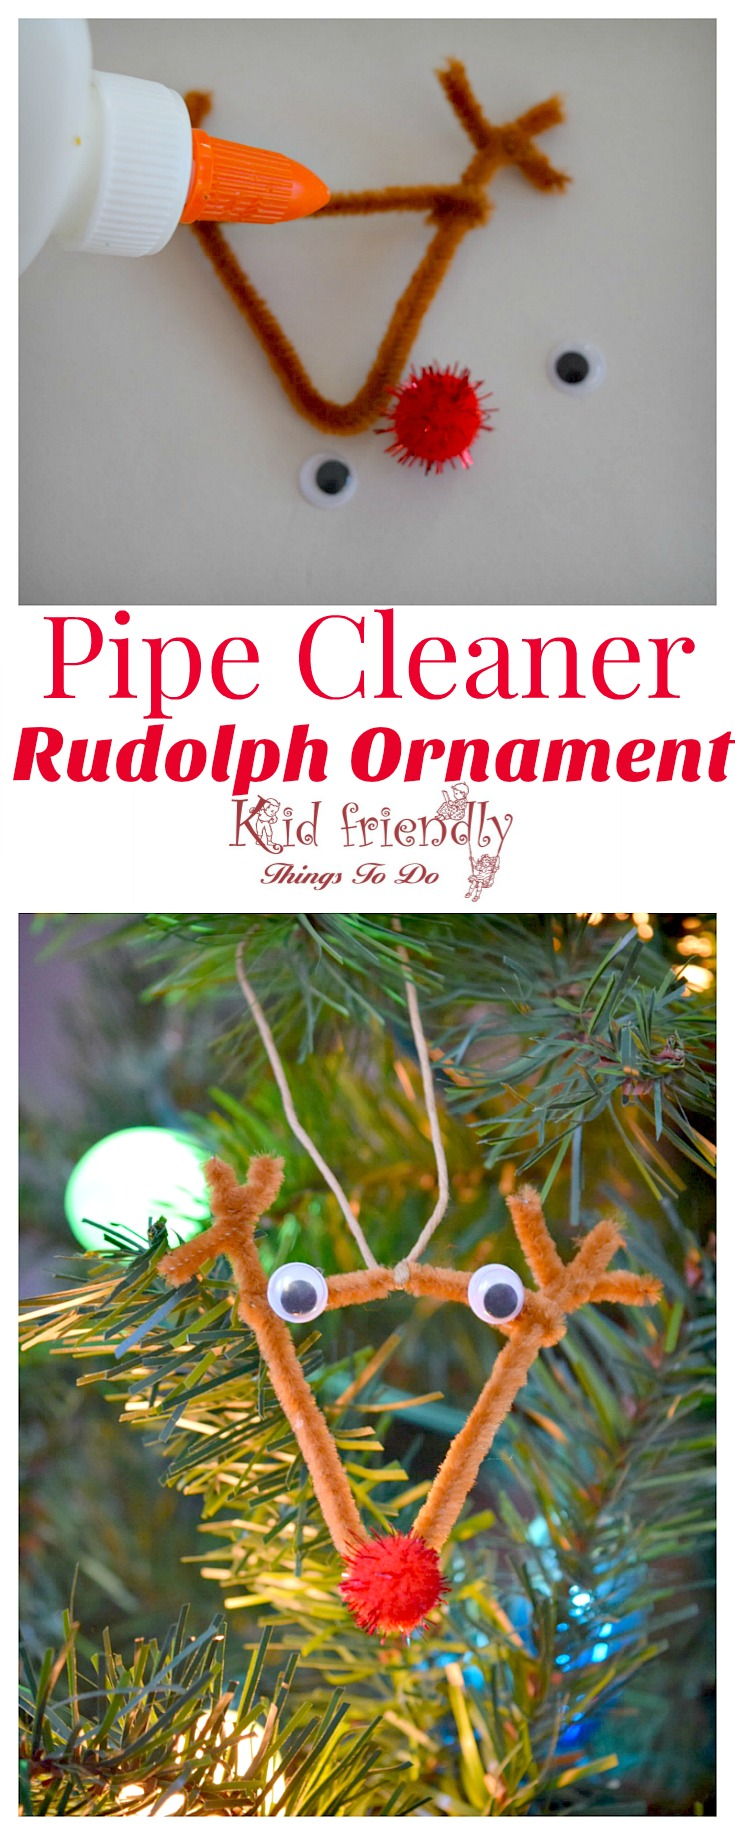 Easy DIY Pipe Cleaner Rudolph Ornament for Kids to Make - Perfect for preschool, and school Christmas Party Craft!   www.kidfriendlythingstodo.com